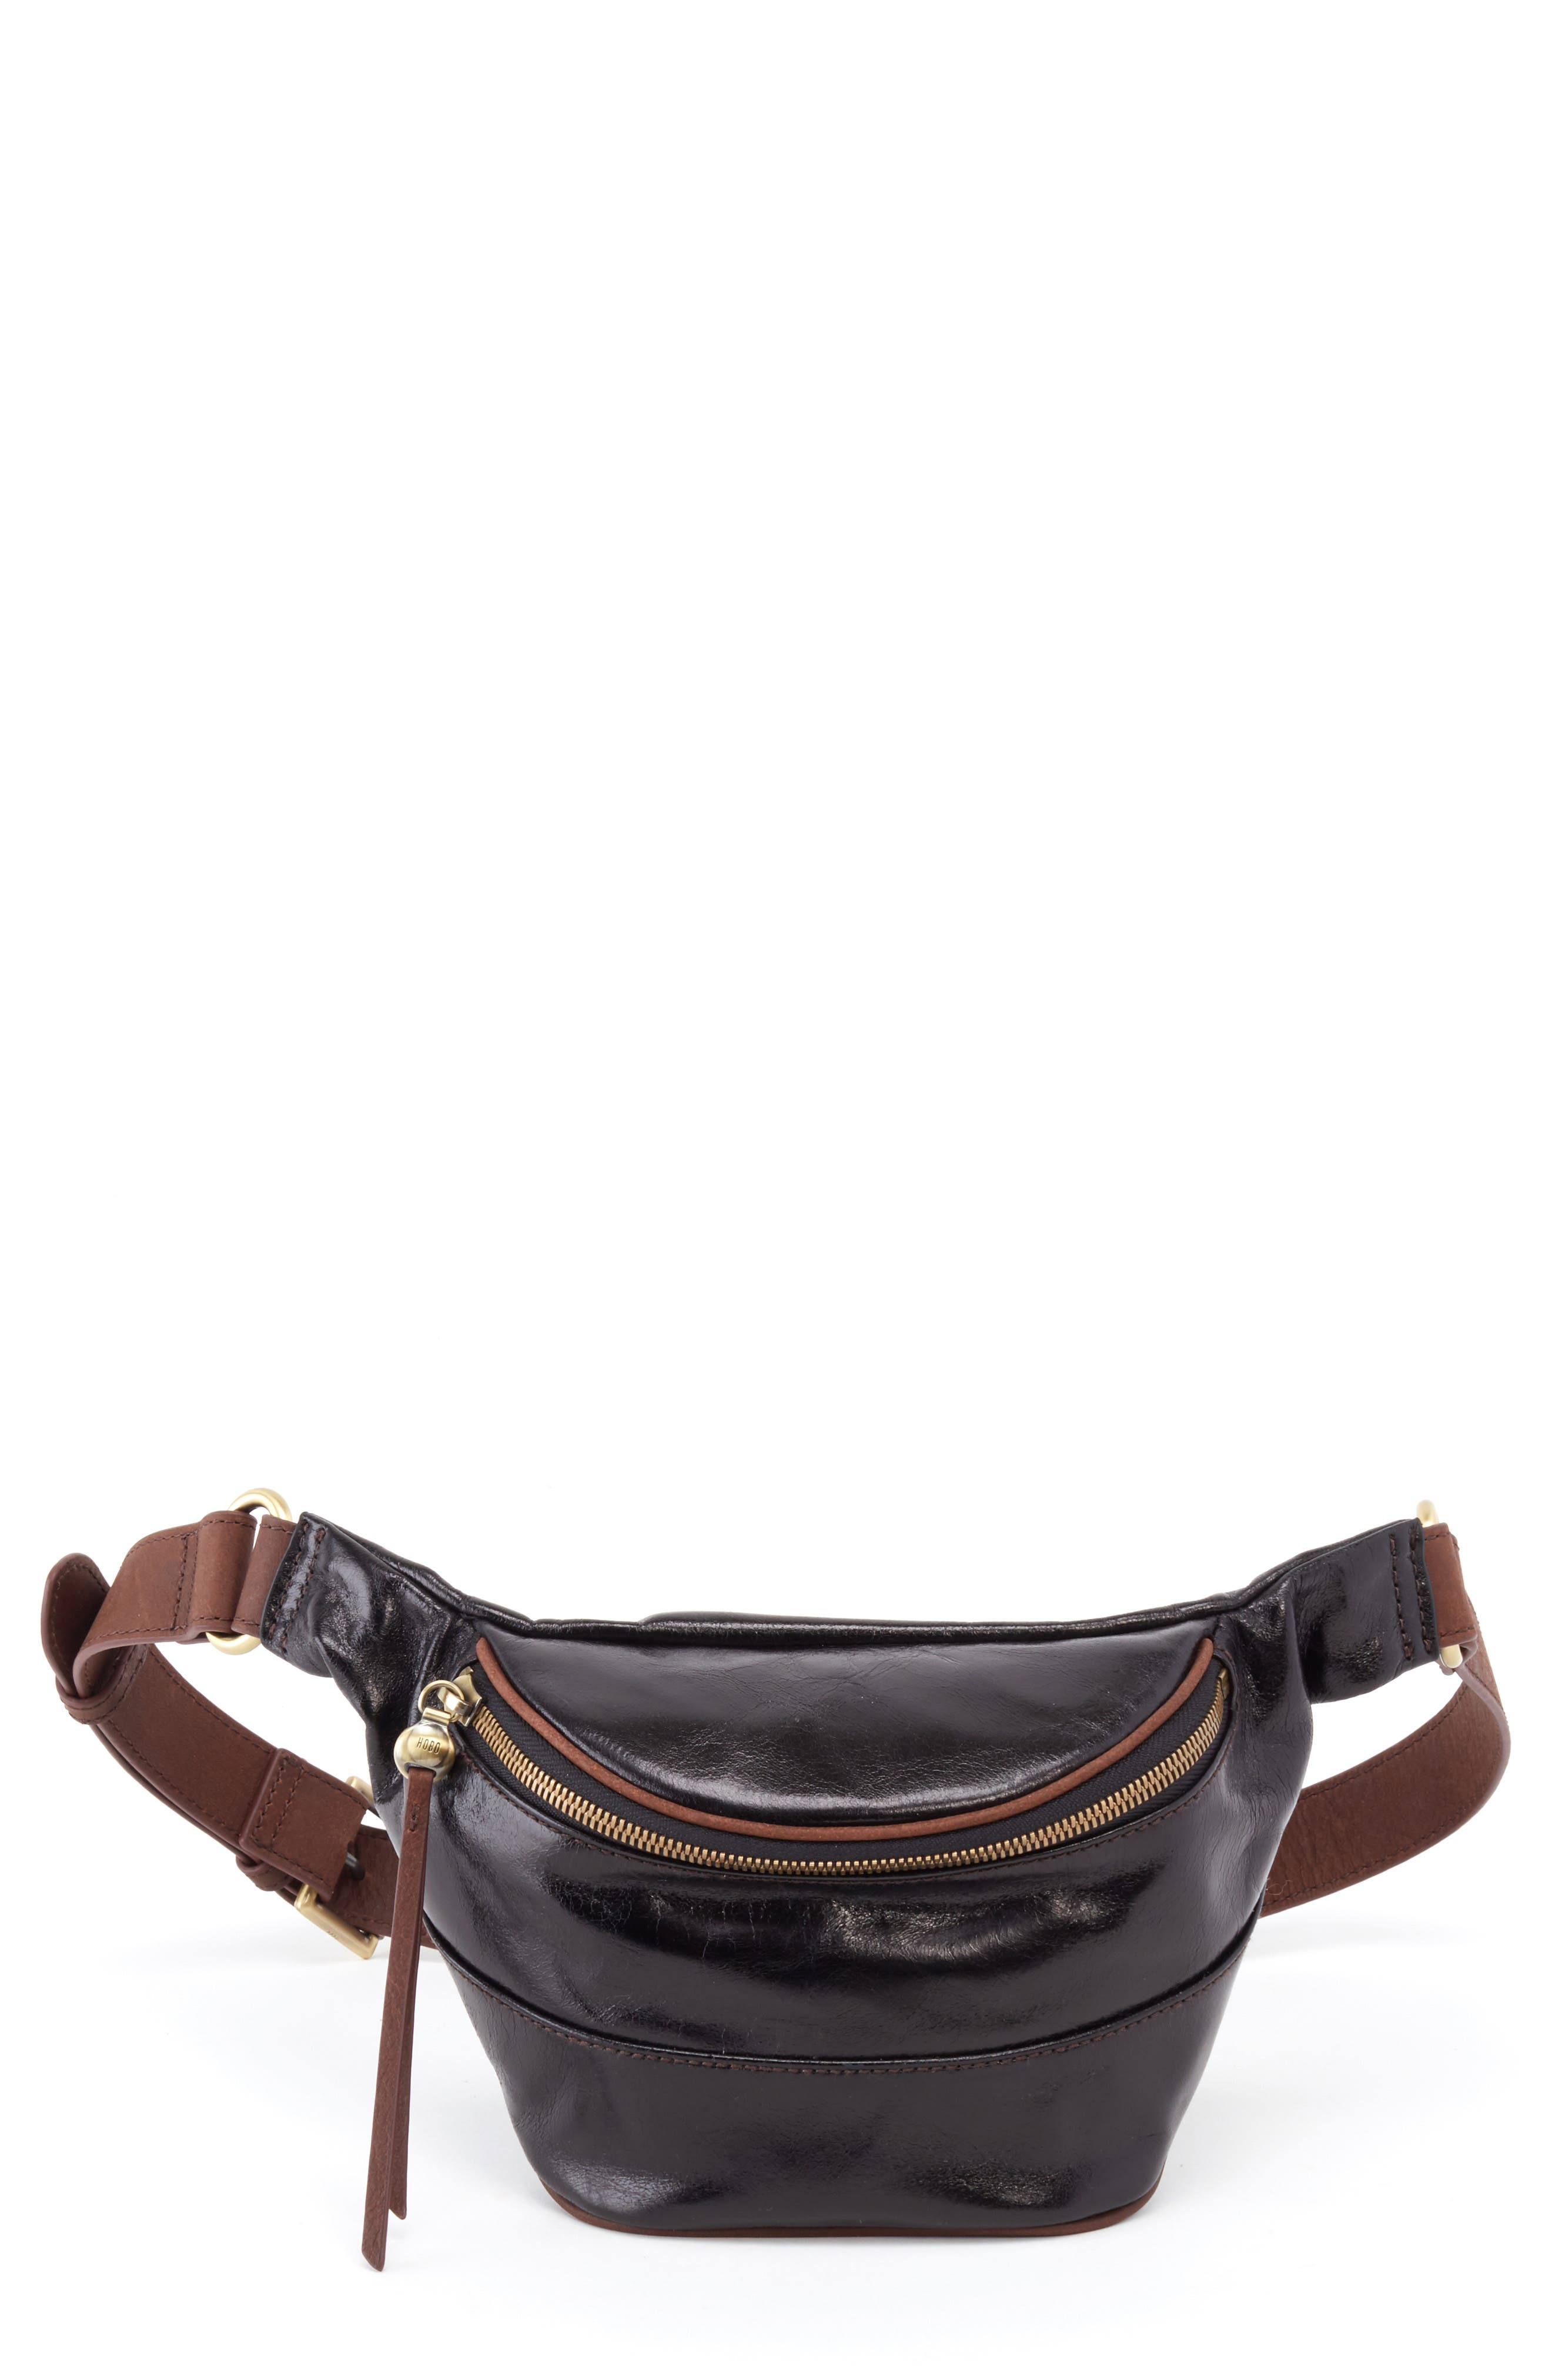 HOBO Jett Leather Belt Bag, Main, color, BLACK